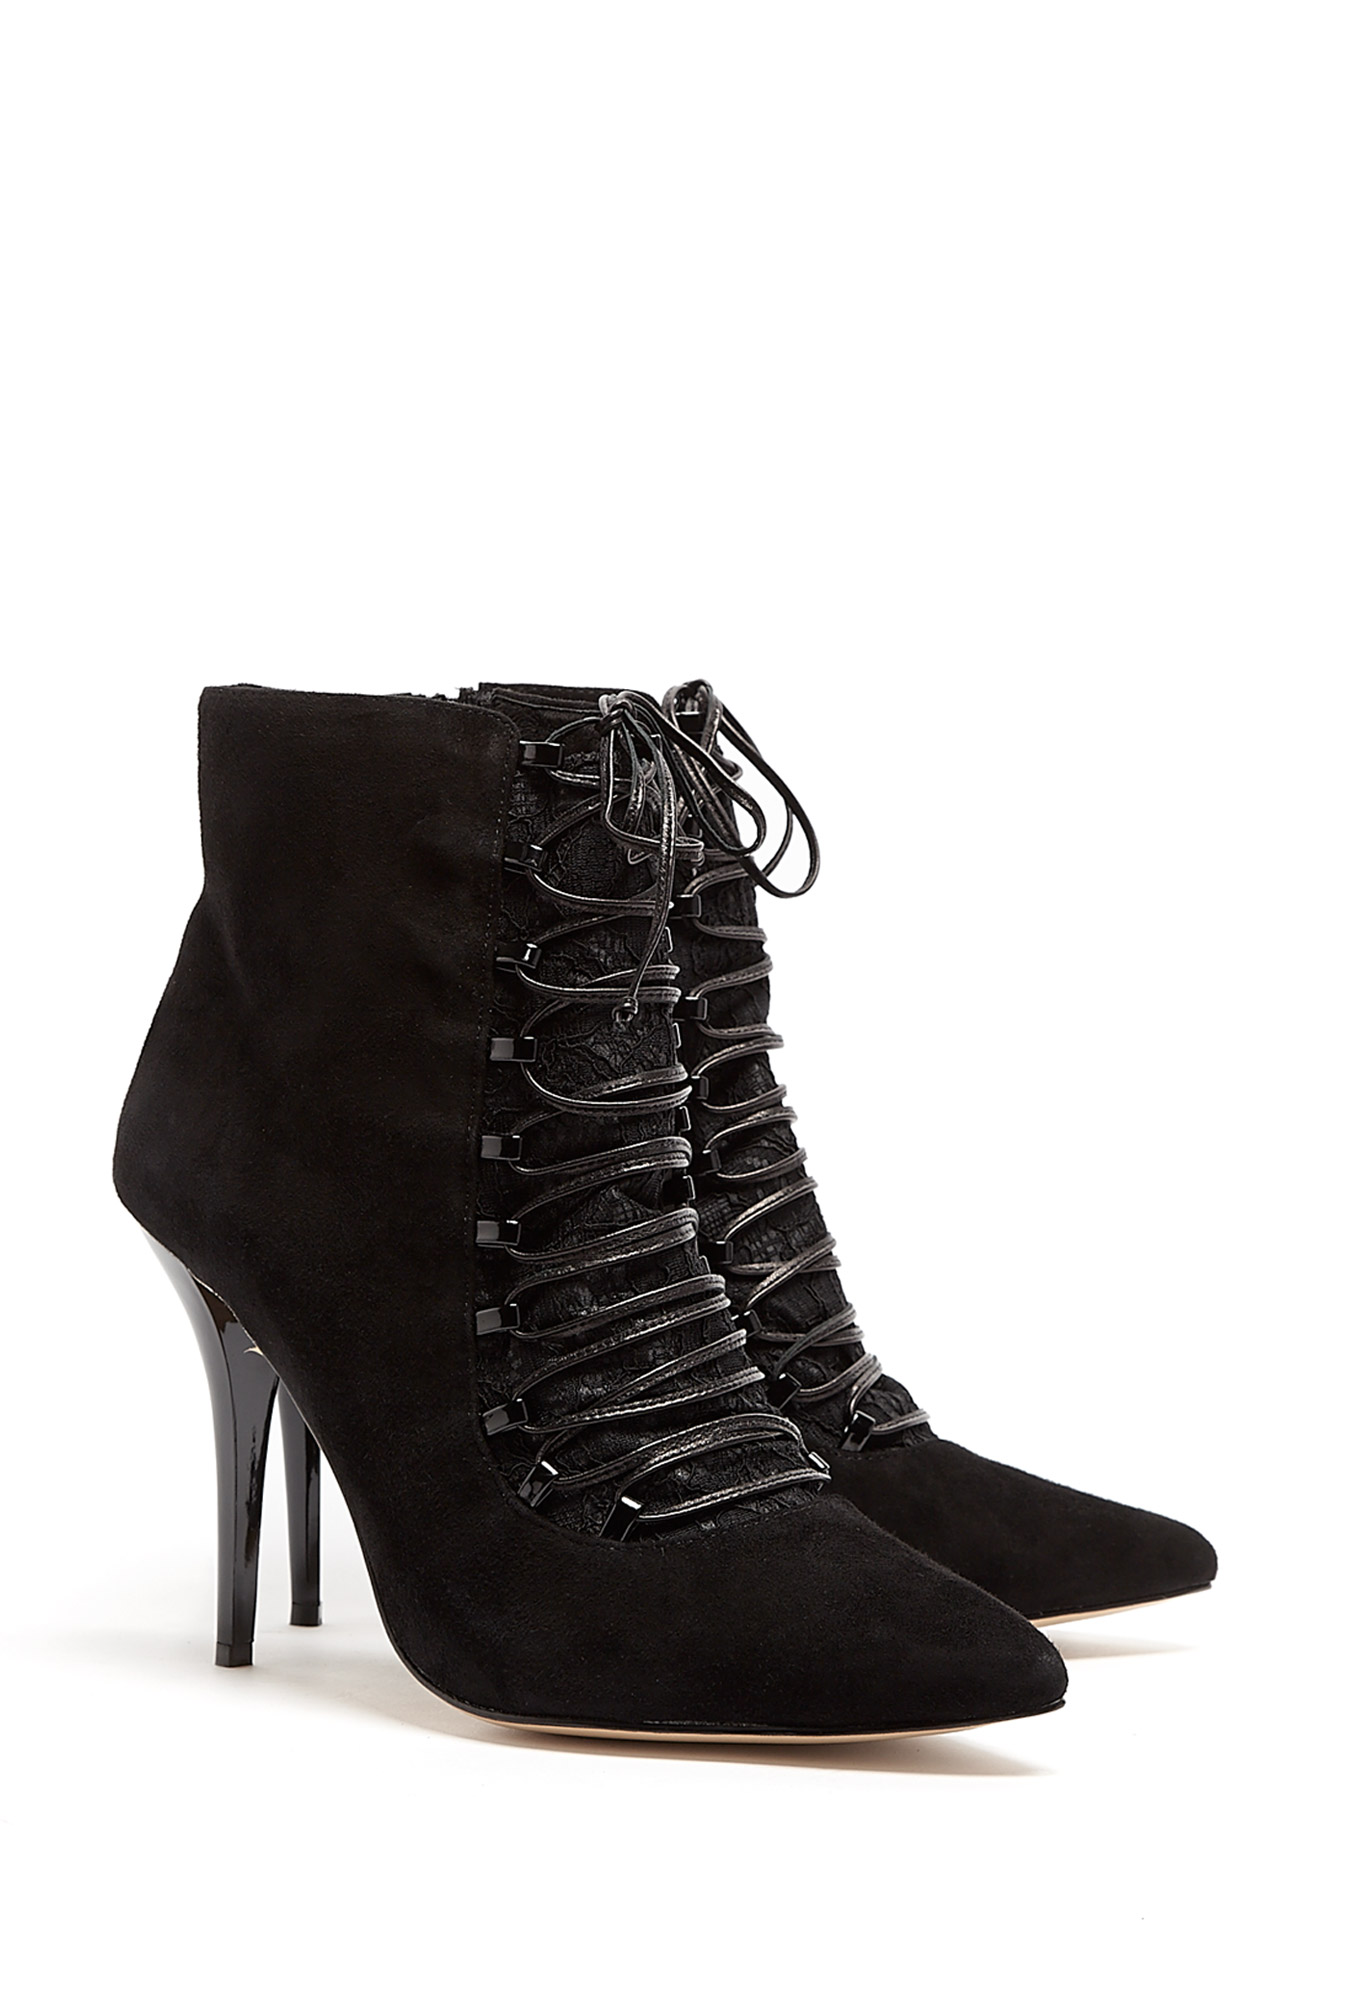 choi zara suede laceup ankle boots in black lyst